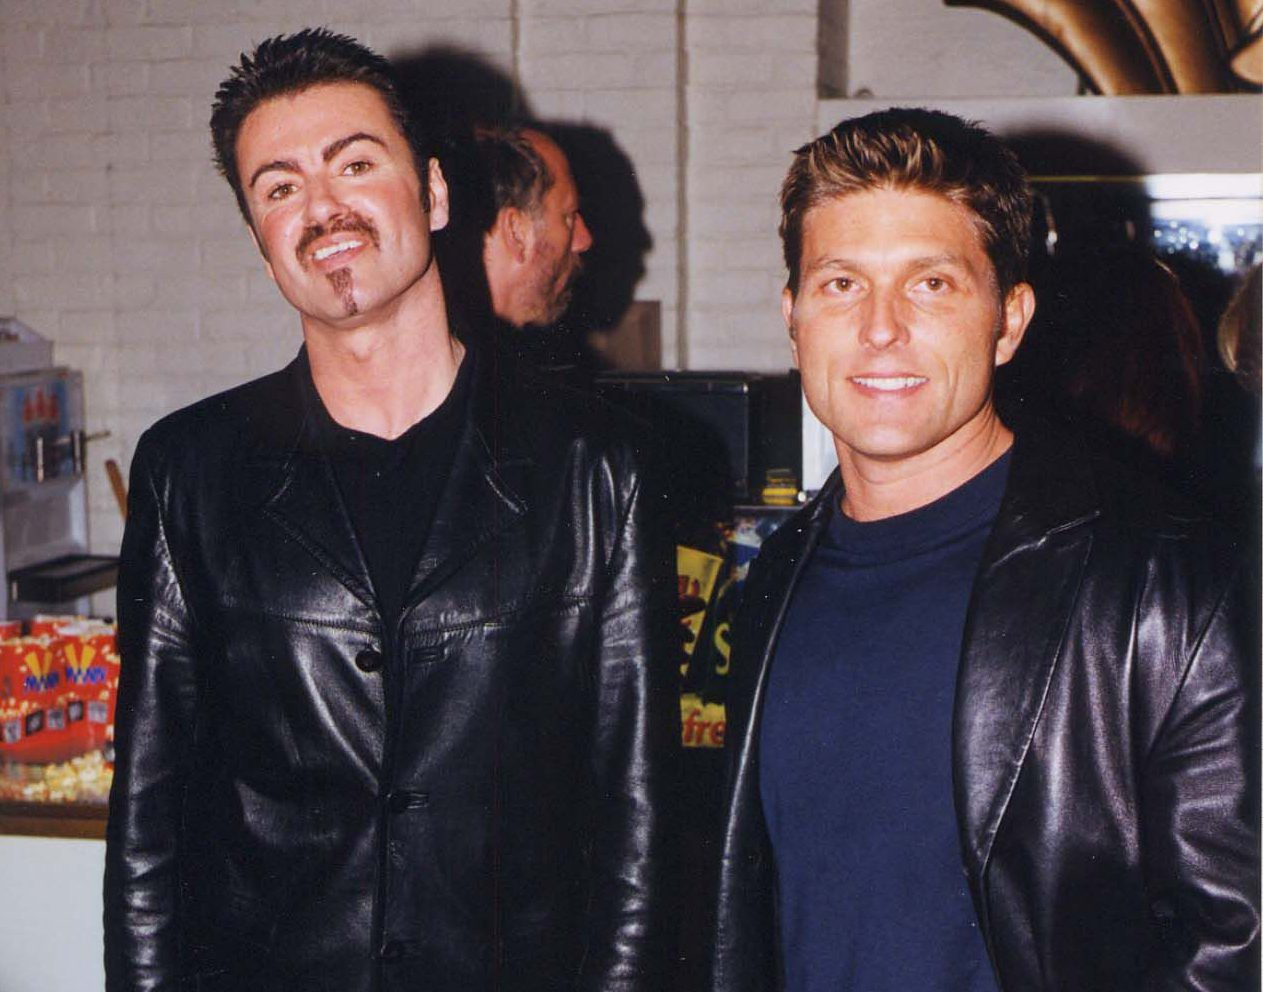 George Michael and Kenny Goss in 1996 (Picture: FilmMagic)